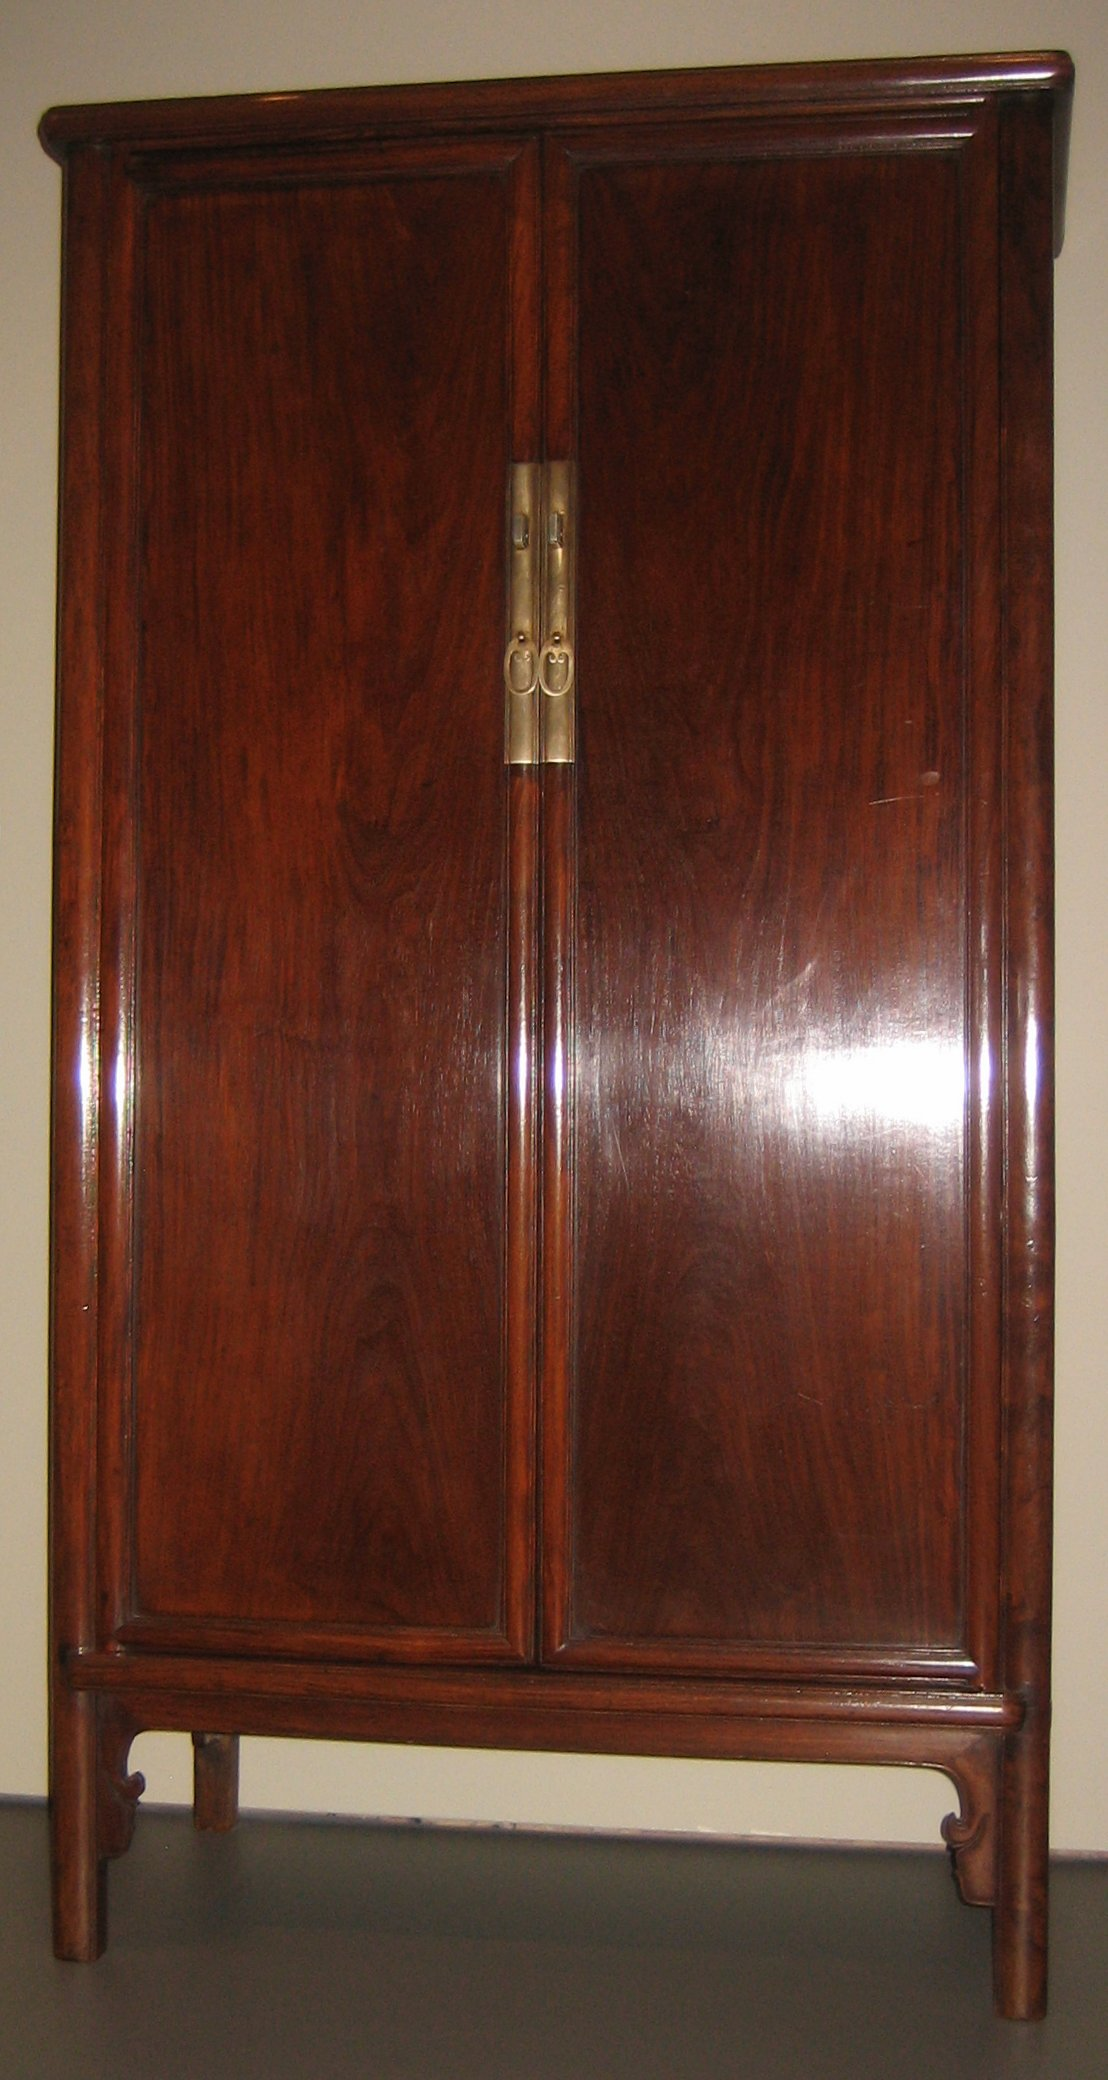 File:Sloping Side Wood Hinged Cabinet, C. 1600 1700,